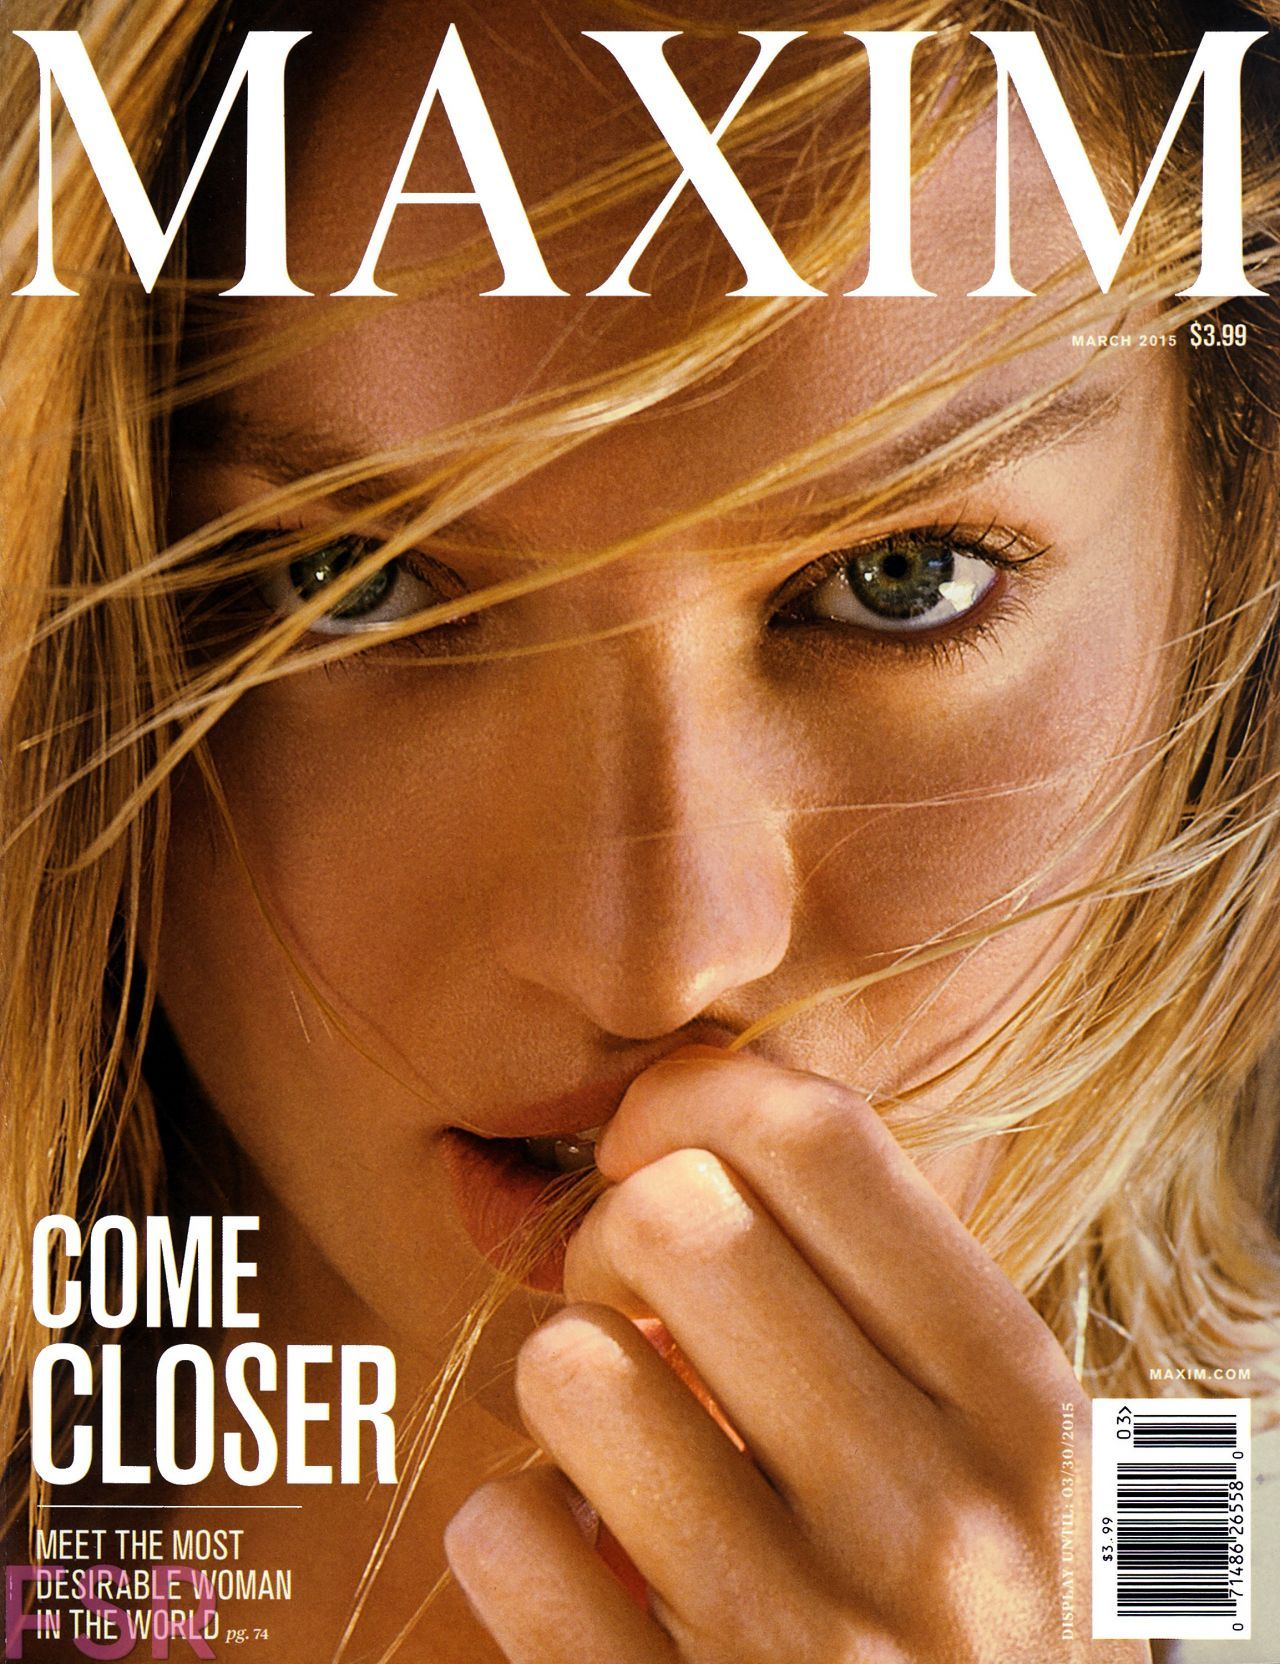 Candice Swanepoel U2013 Maxim Magazine March 2015 Cover